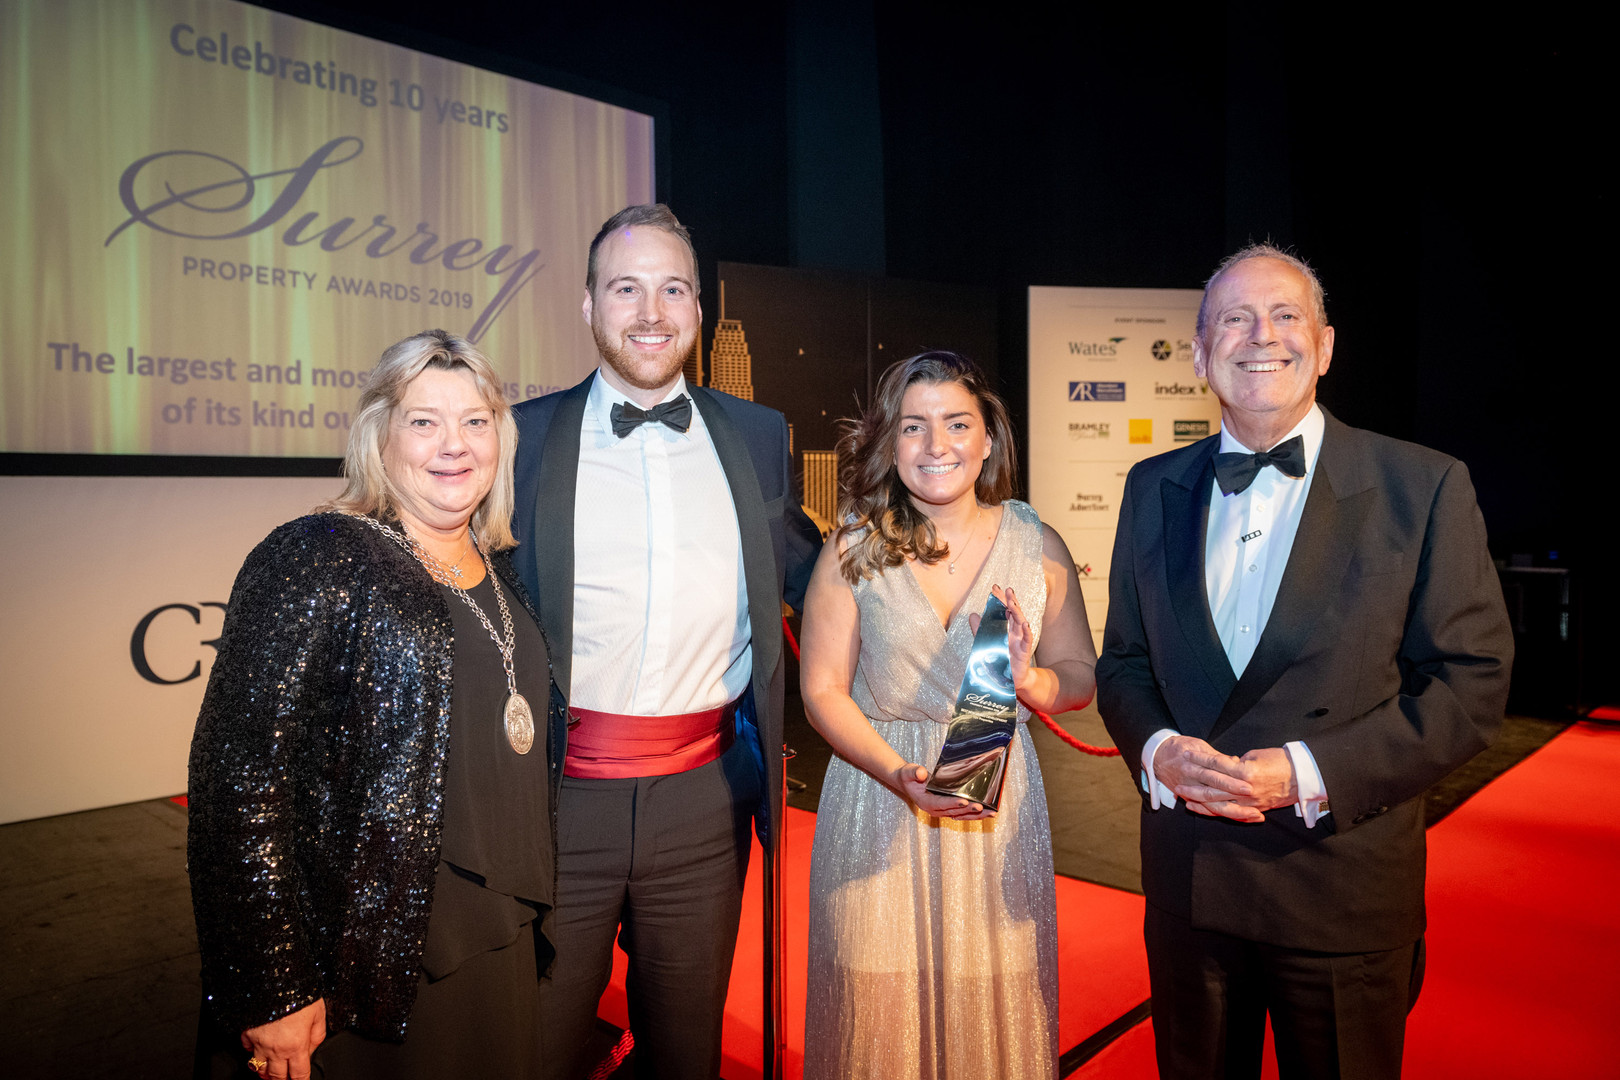 SurreyPropertyAwards_Nov2019_383.jpg